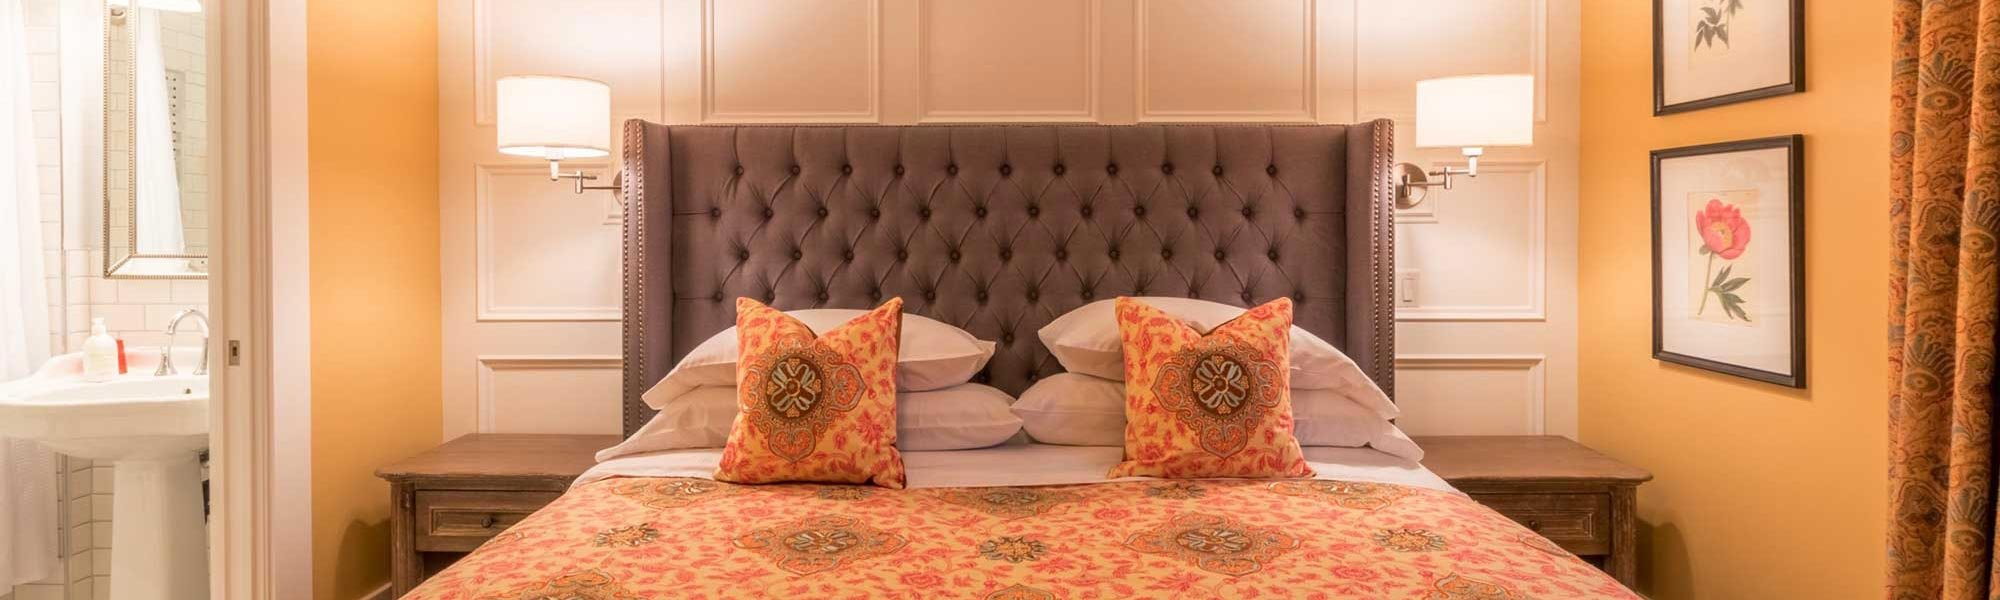 Orange Bed with Decorative Pillows